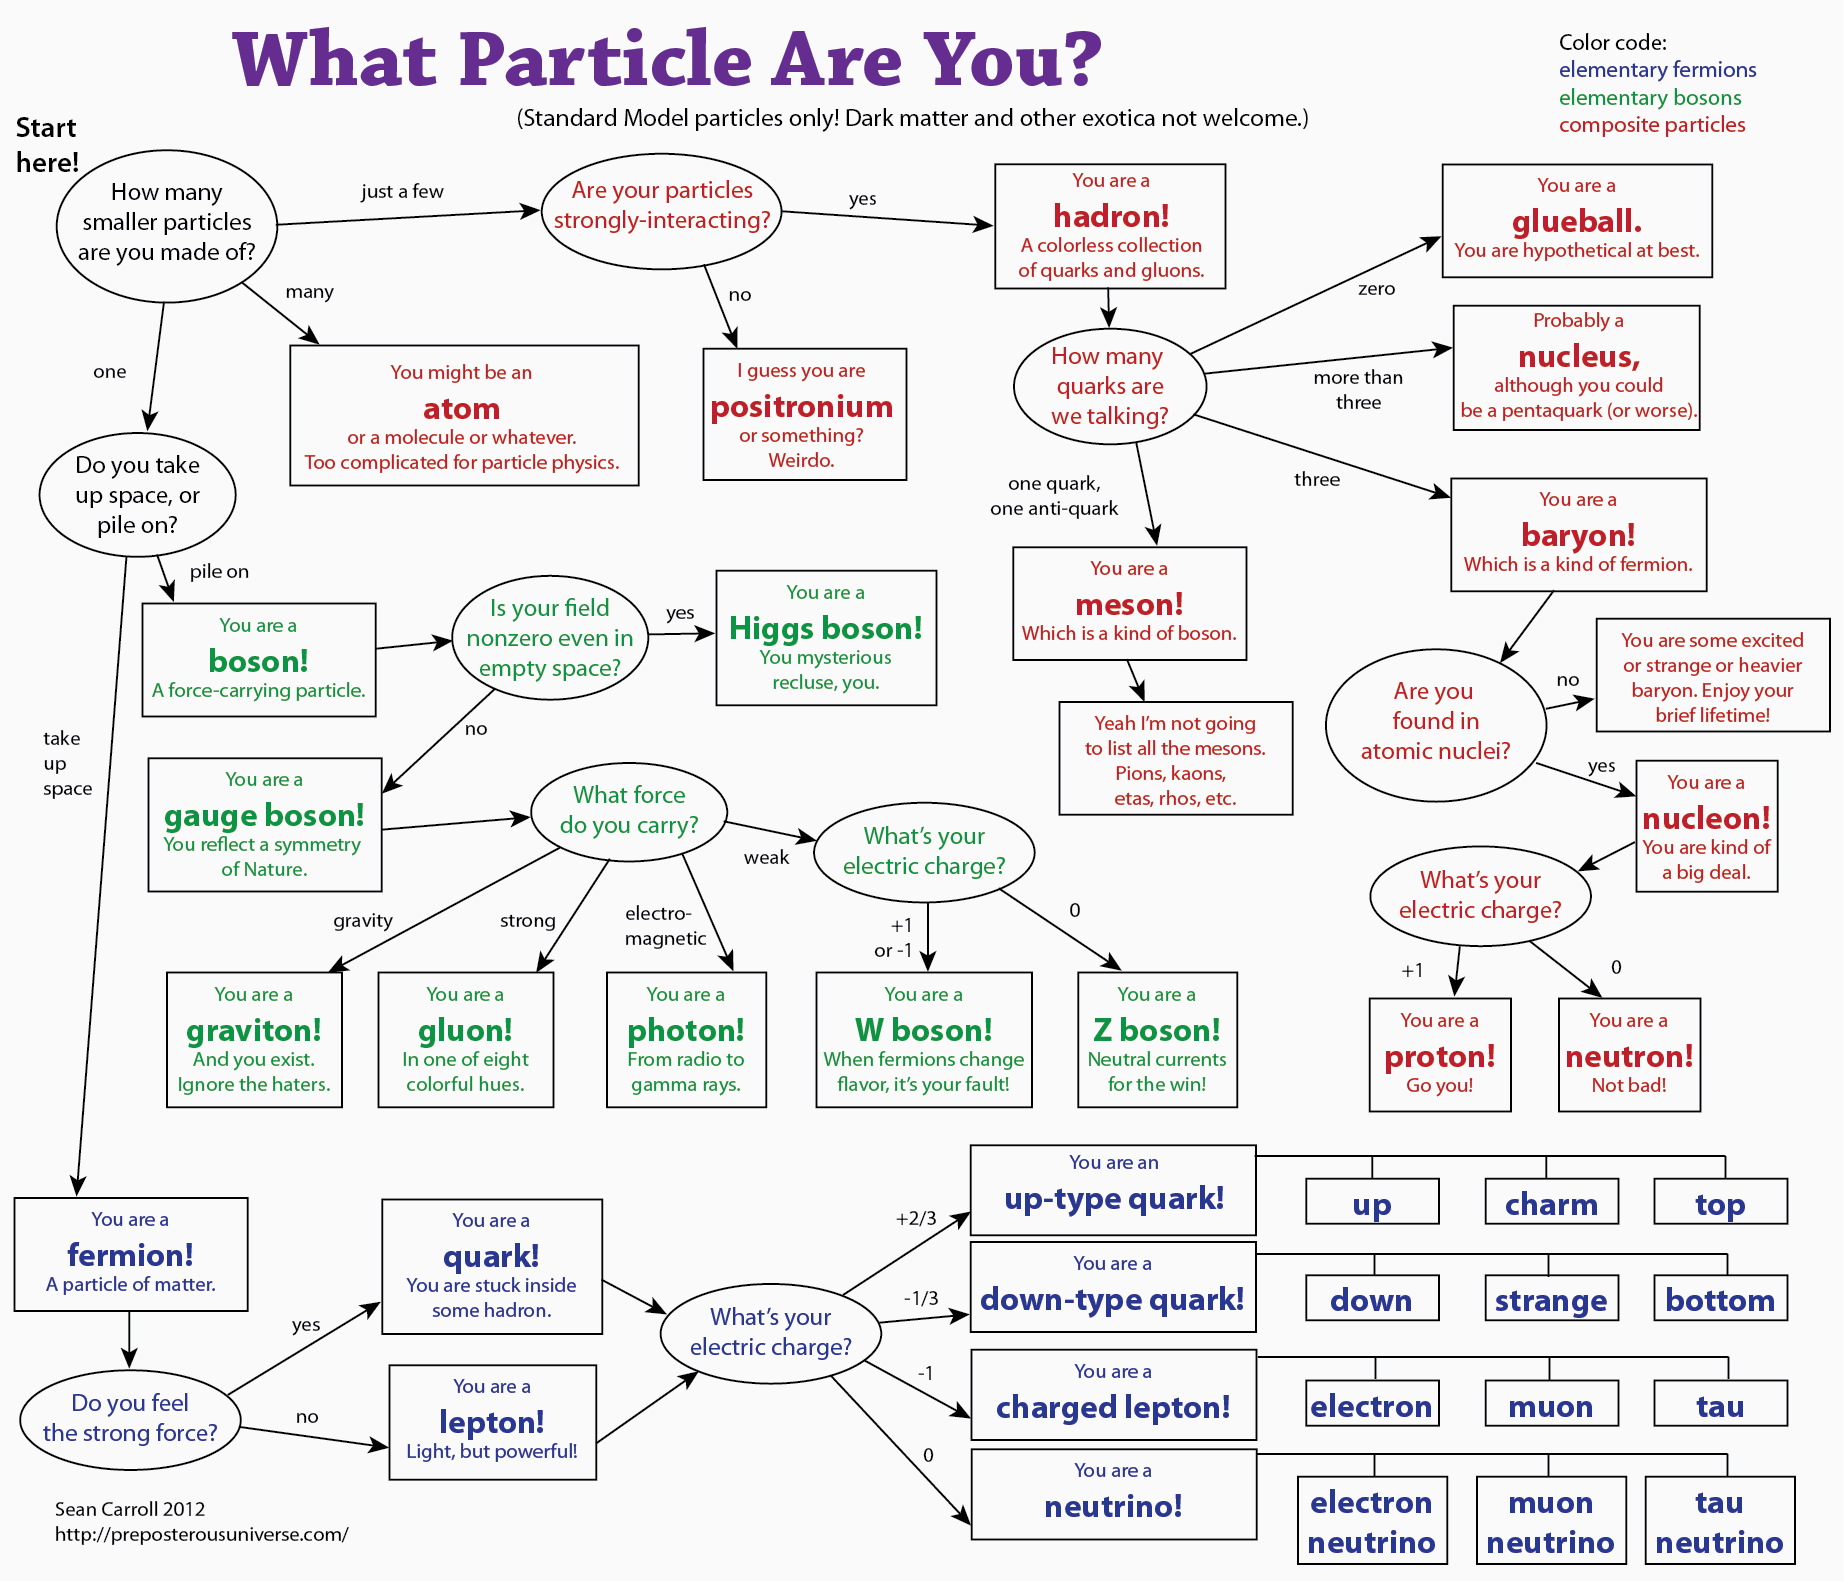 Periodic Table Of Particles Of The Standard Model